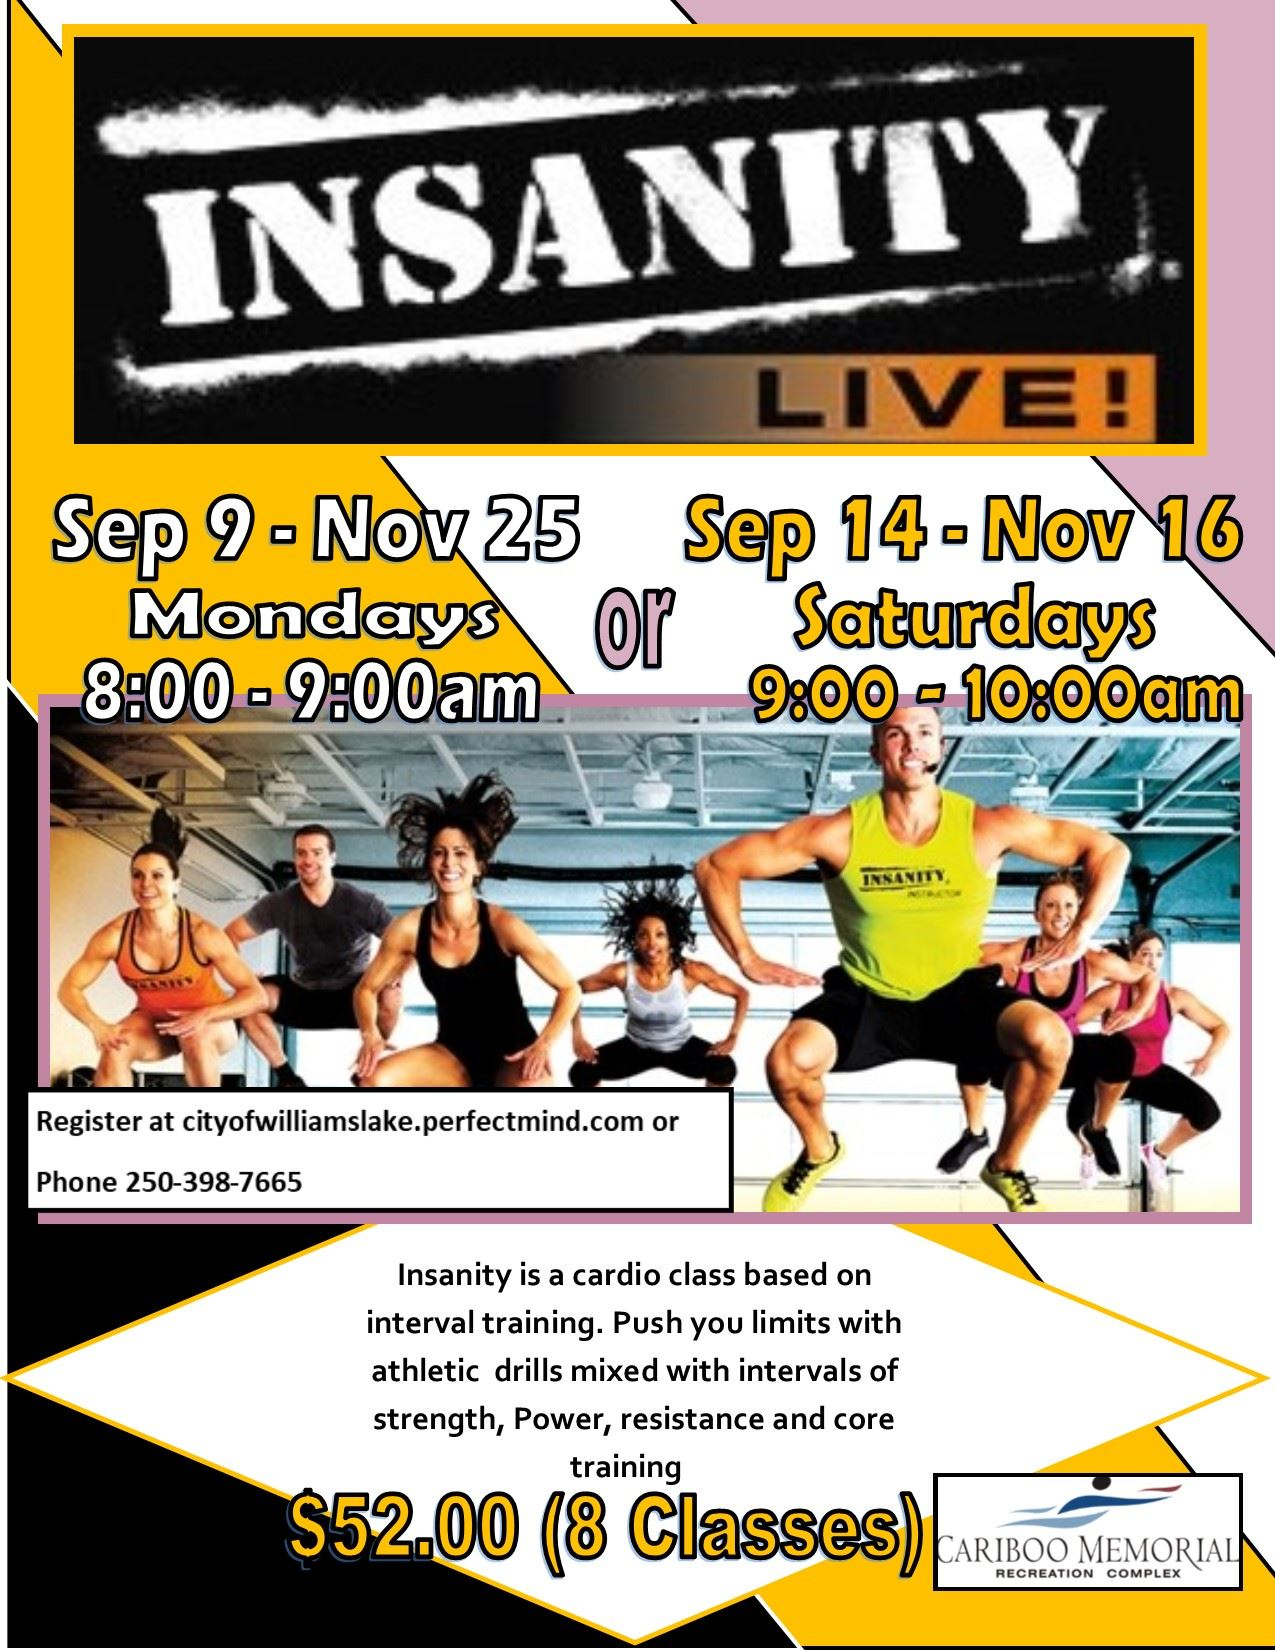 Insanity Live sep